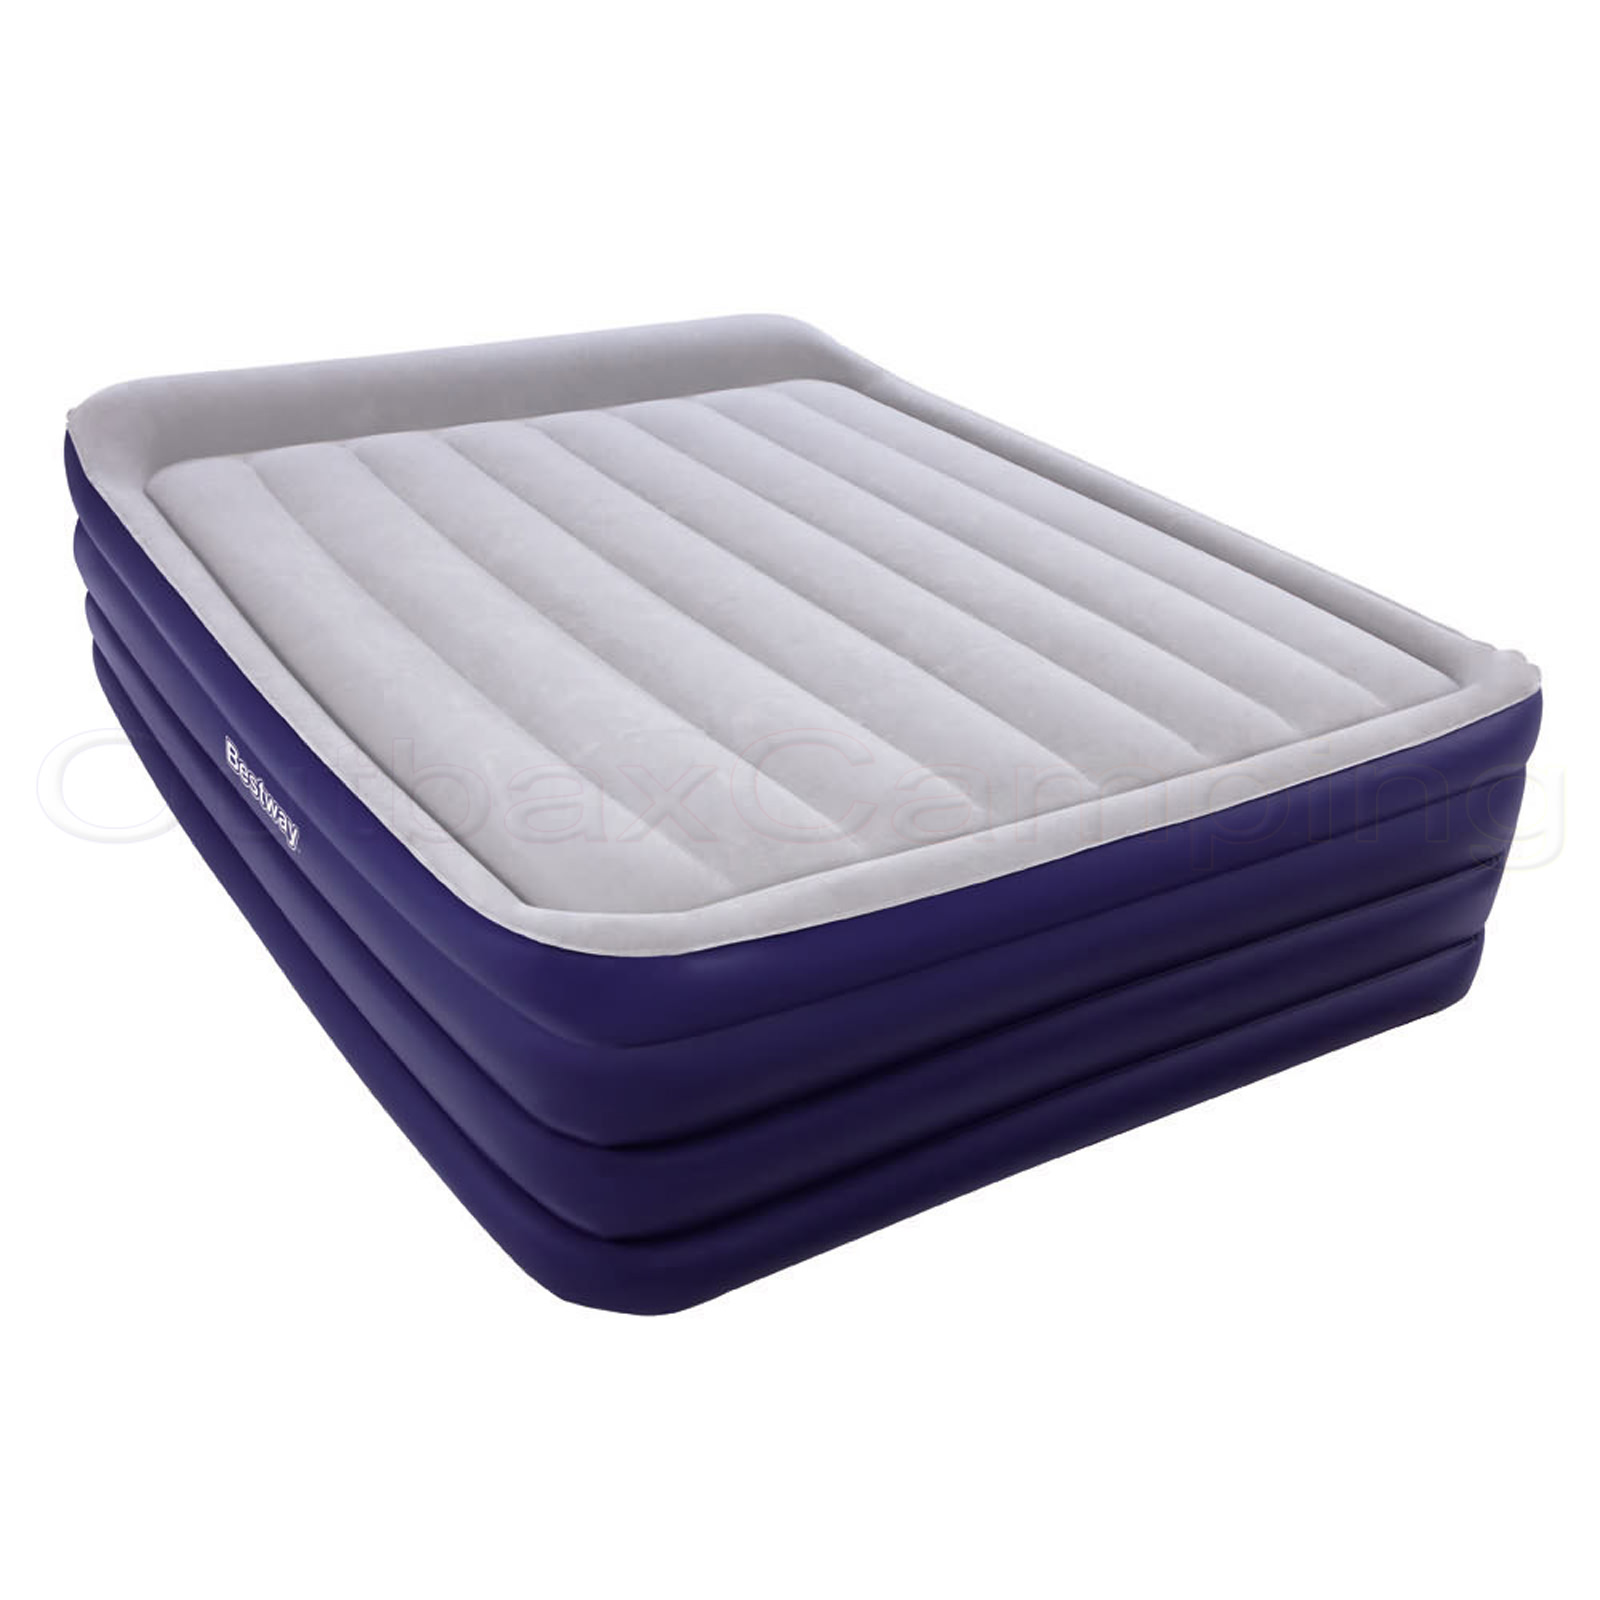 range transport store mattresses air beds and easy the camping inflatable bed to